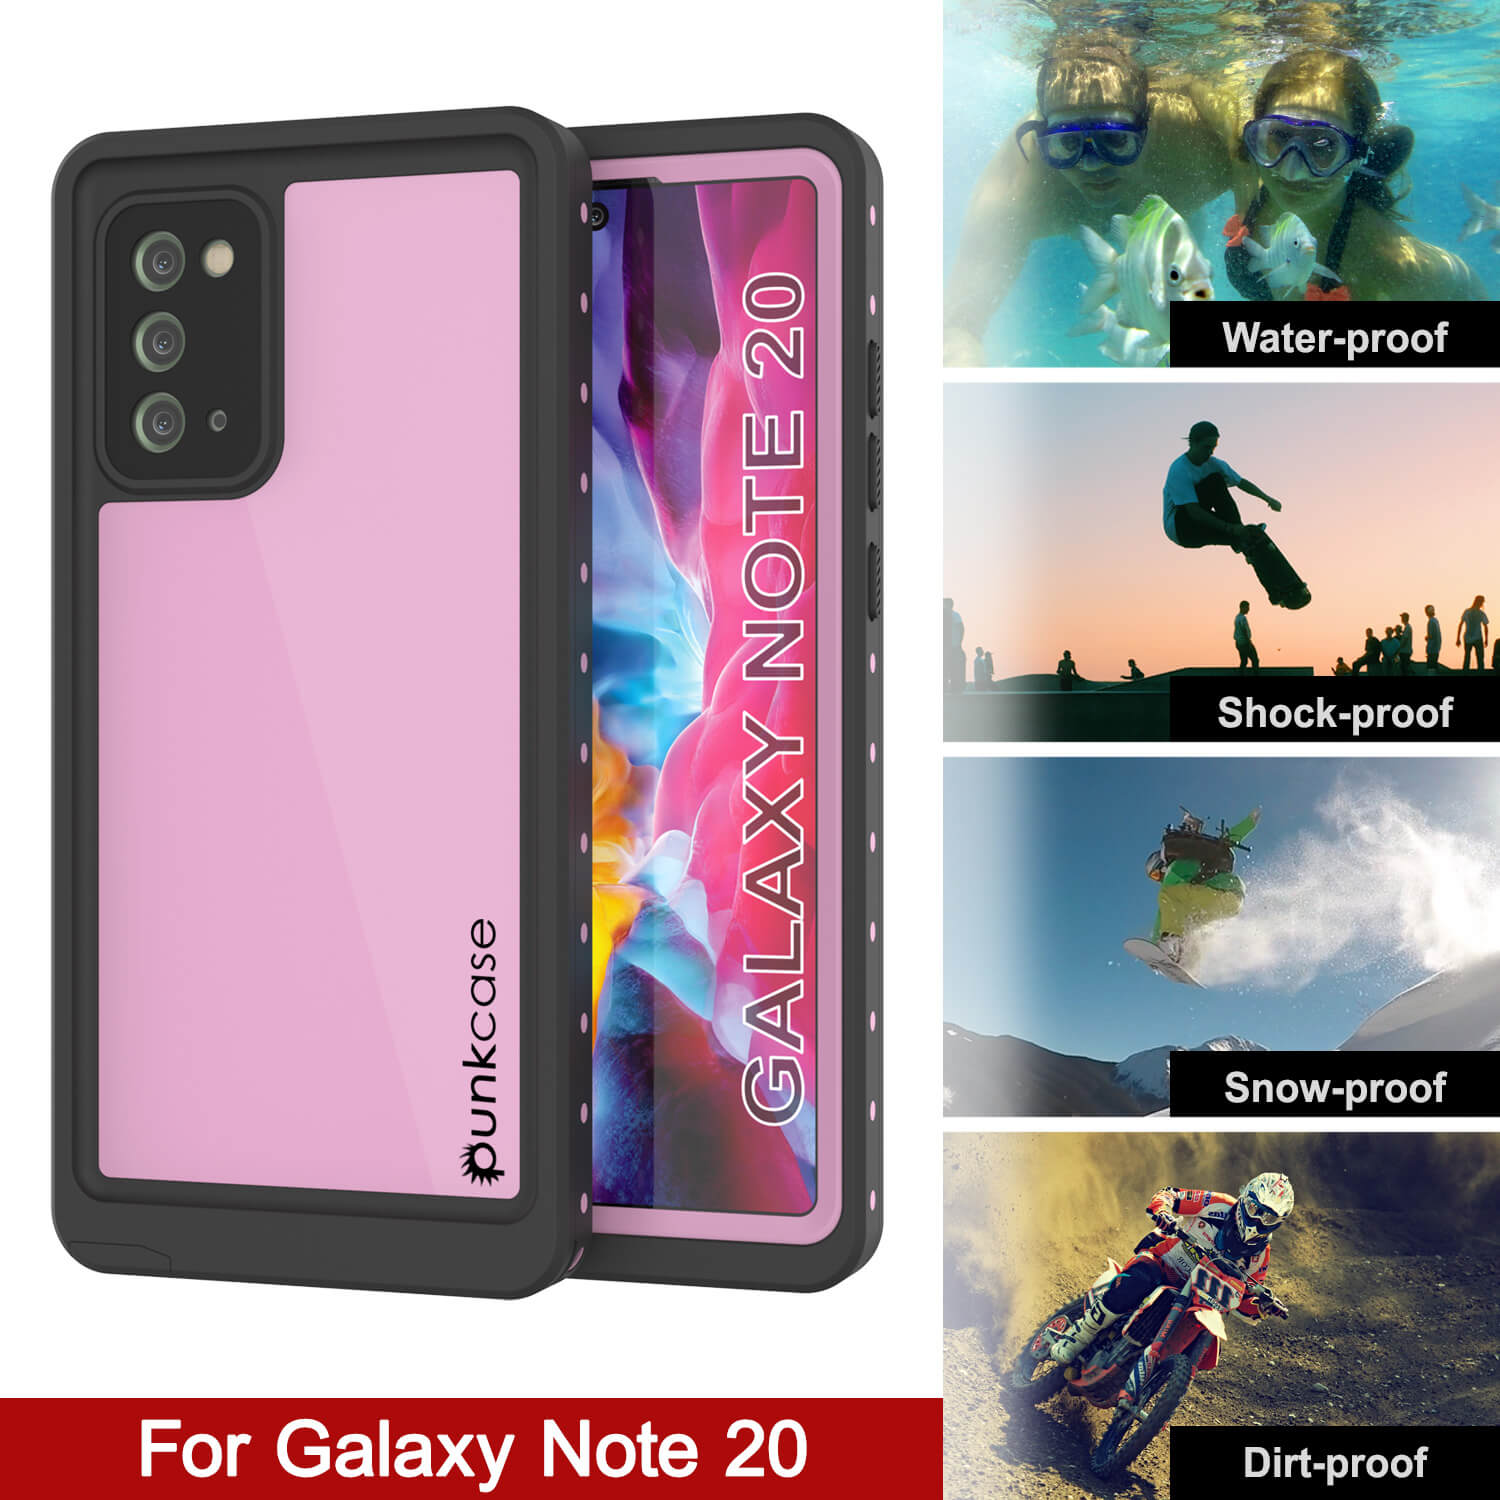 Galaxy Note 20 Waterproof Case, Punkcase Studstar Pink Thin Armor Cover